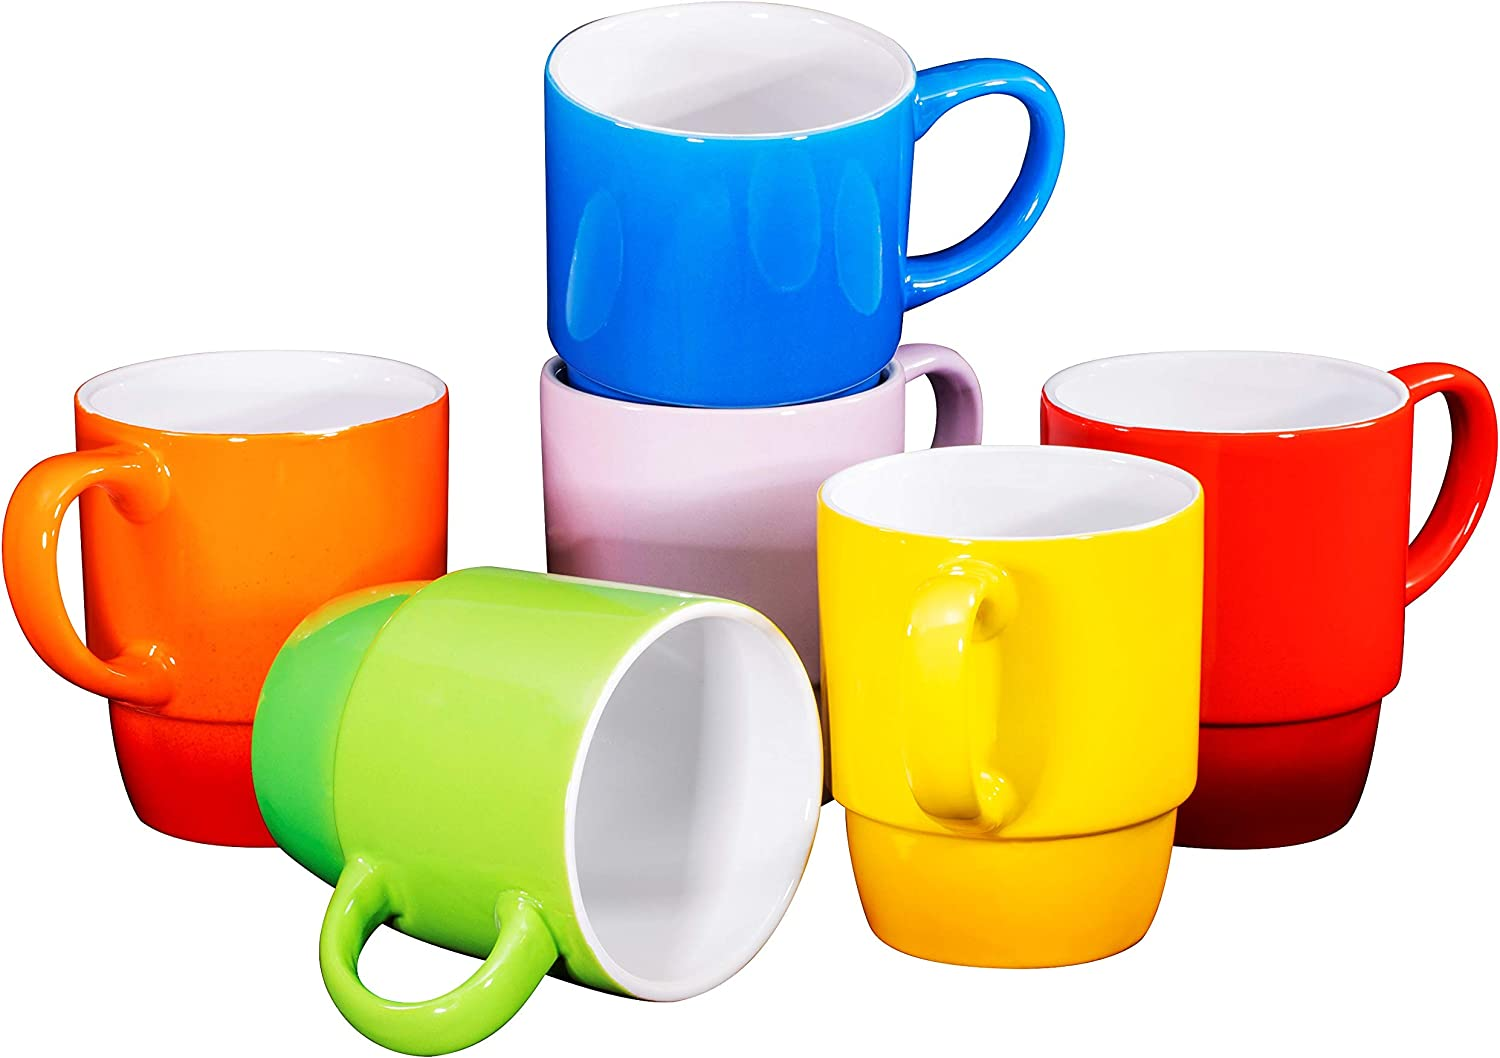 Ceramic Stacking Coffee Mug Tea Cup Dishwasher Safe Set of 6 - Large 18 Ounce, Gradient Colors